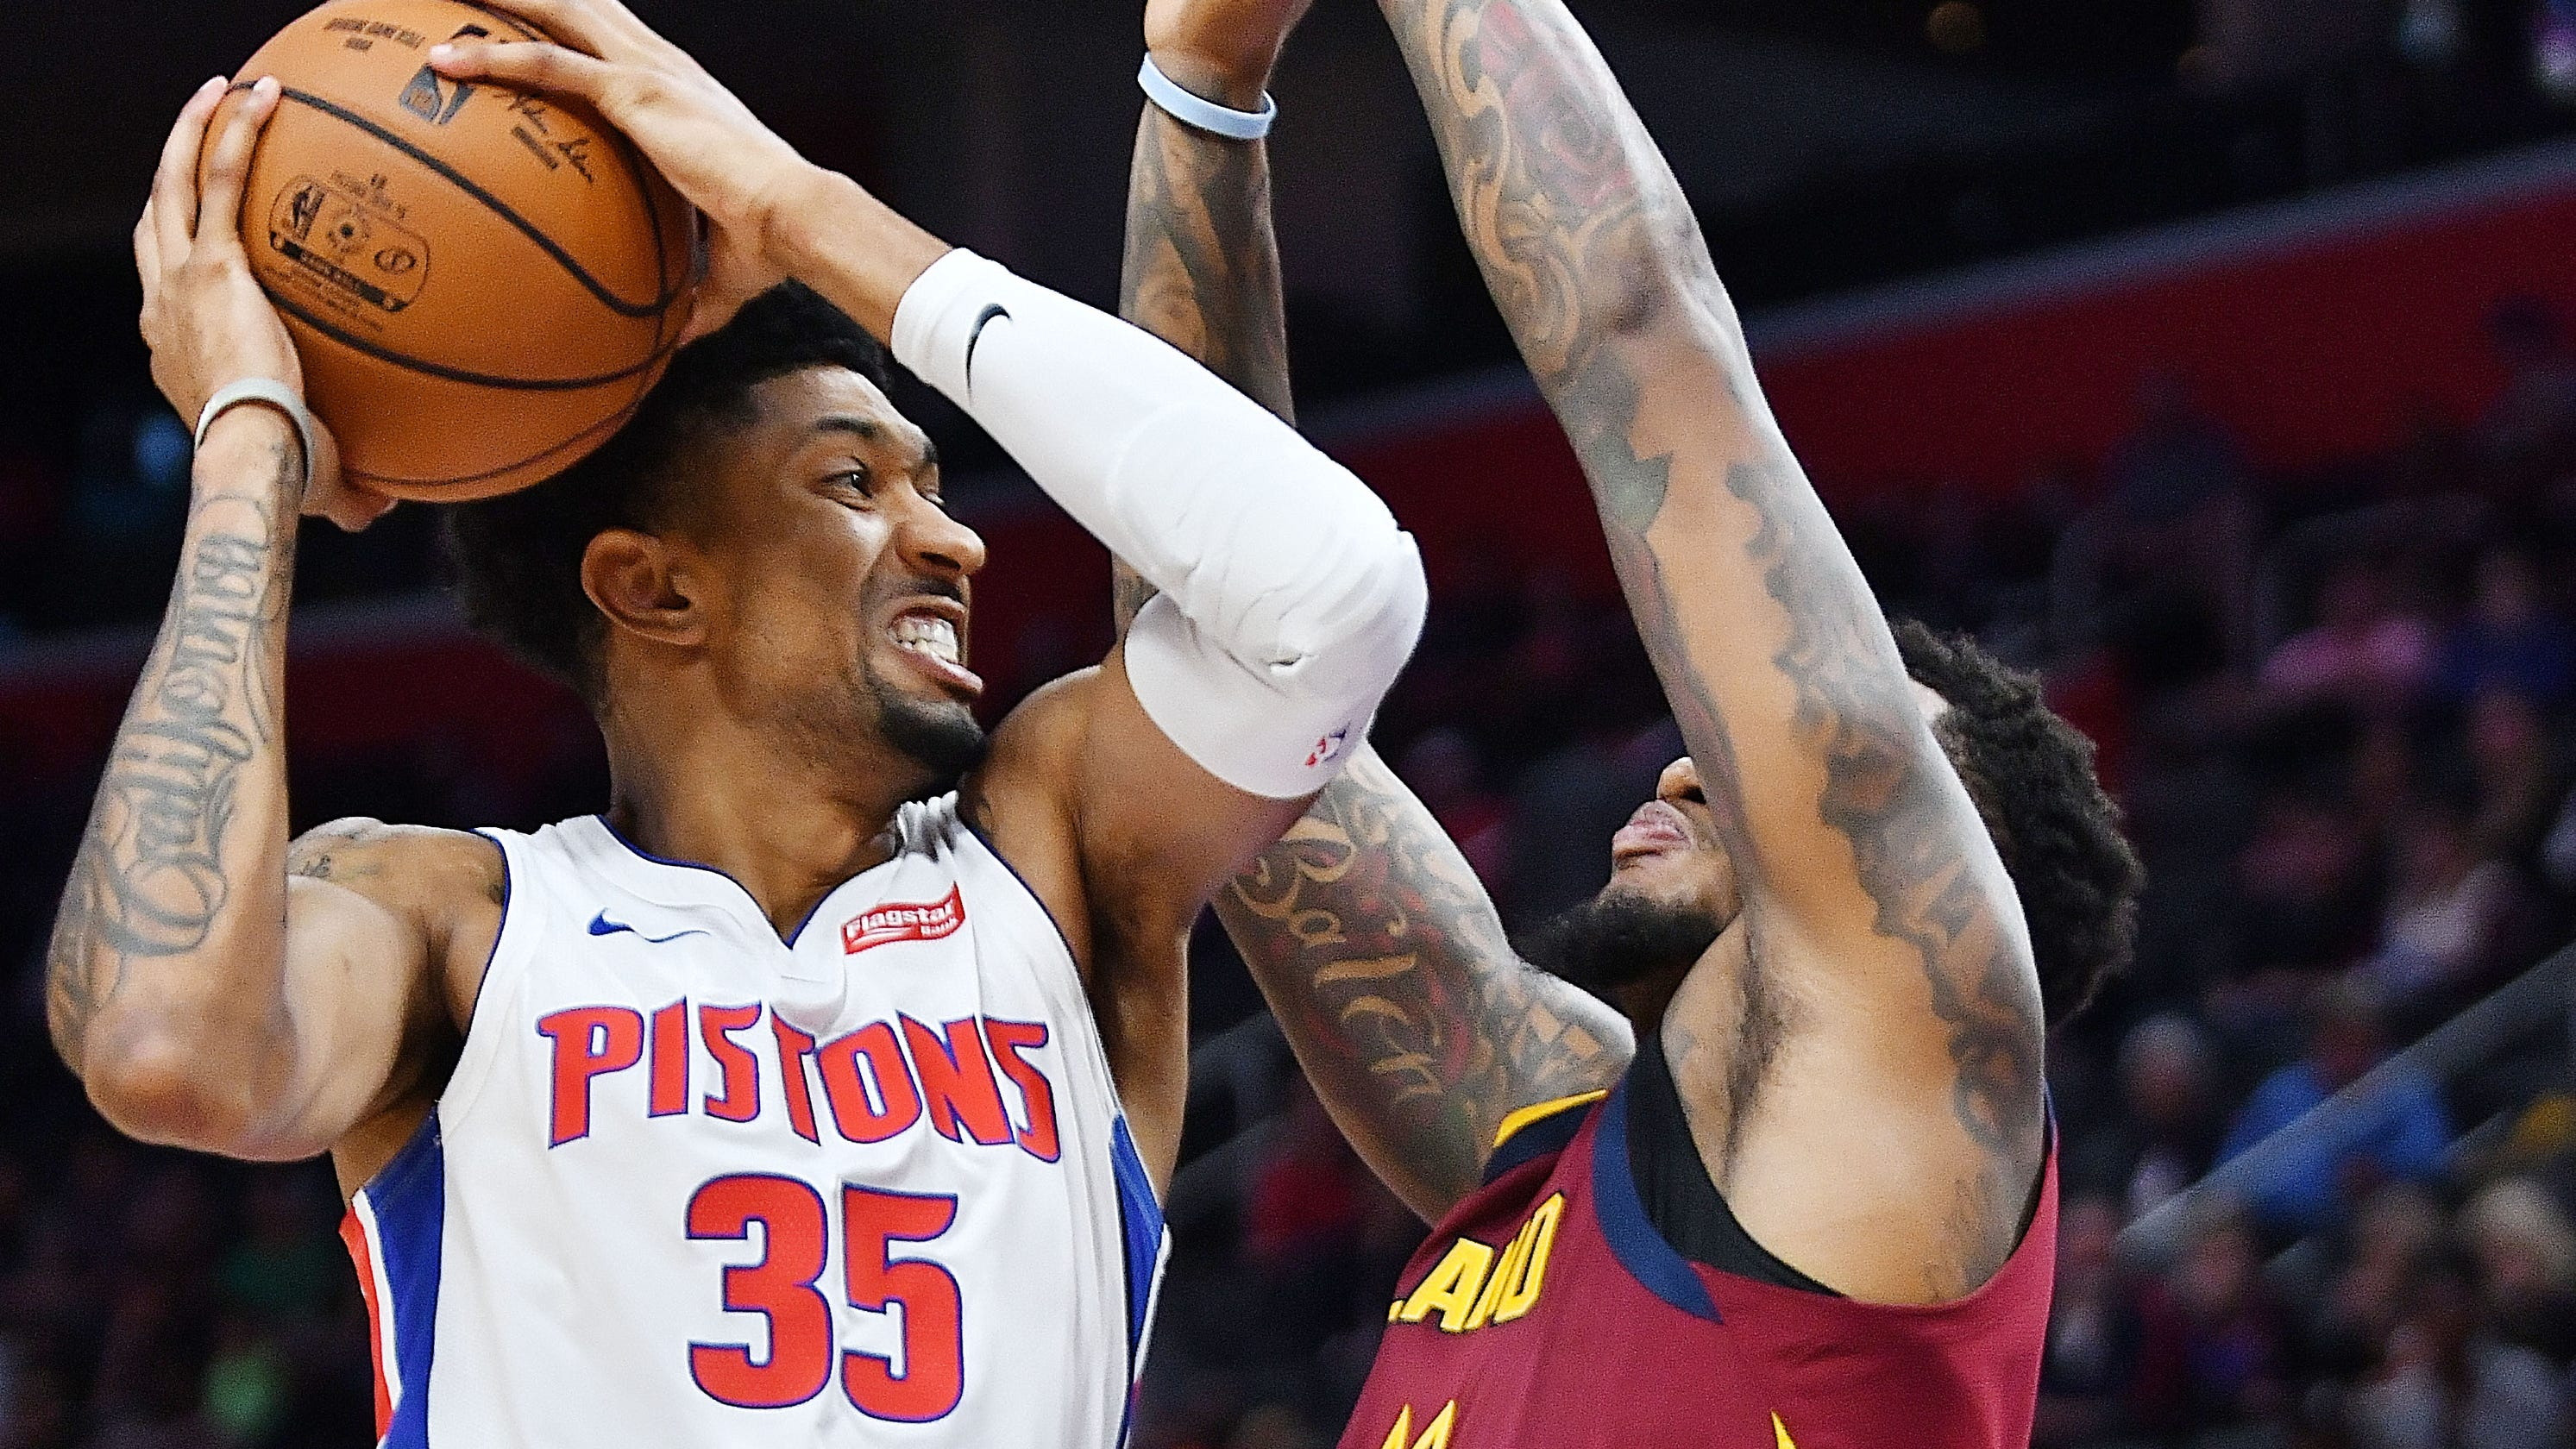 Remaining 22 games could go far in determining Pistons' future